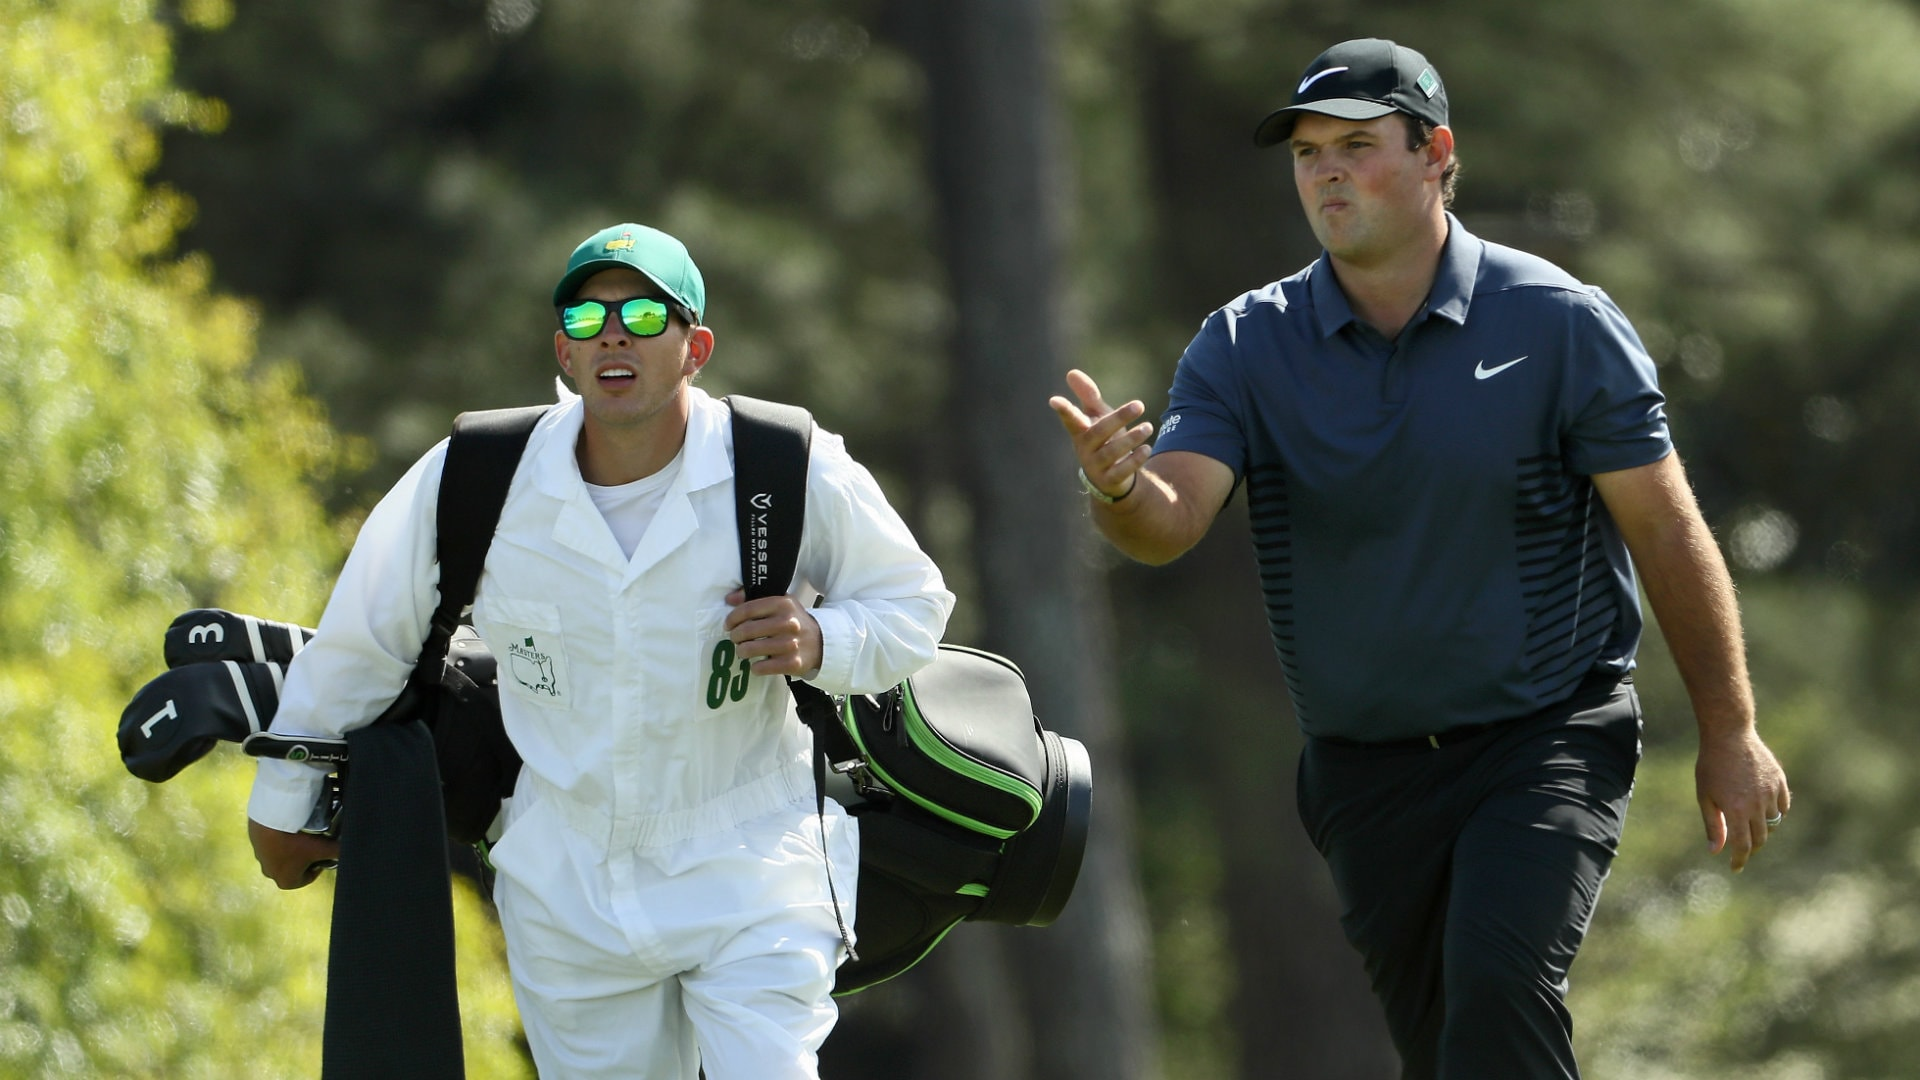 Patrick Reed and his brother-in-law caddie Kessler Karain